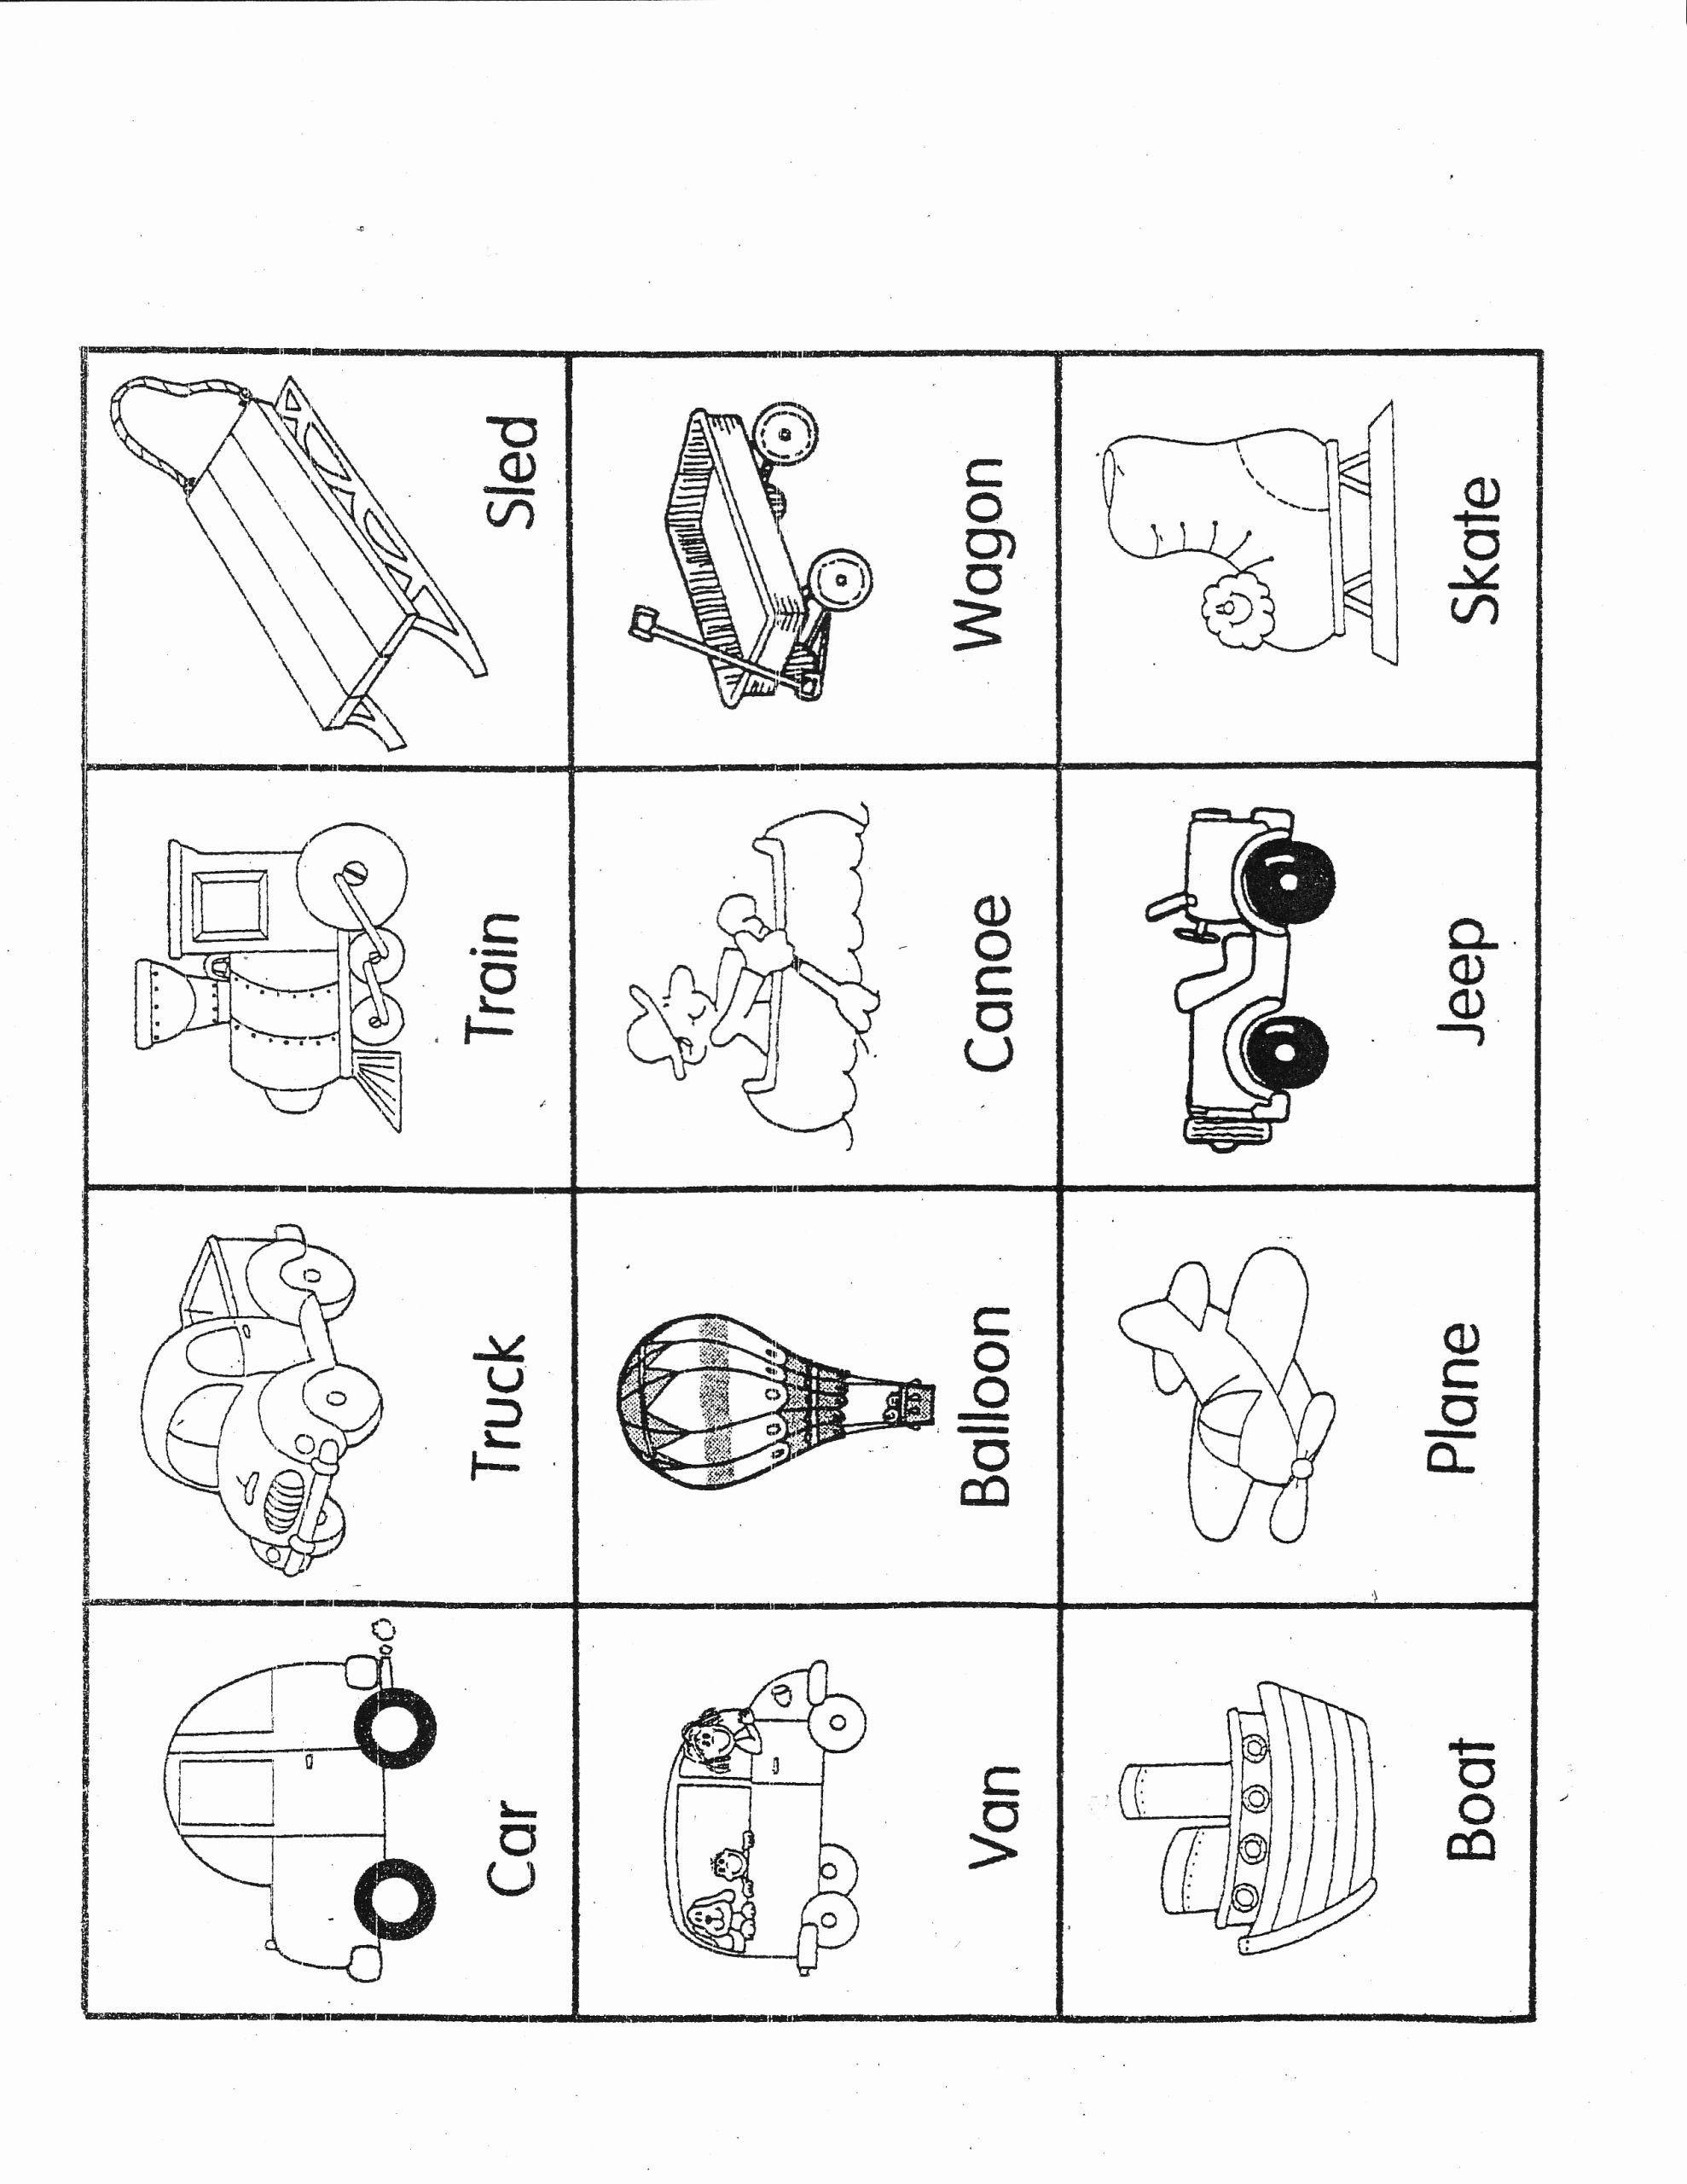 Worksheet For Kindergarten About Transportation